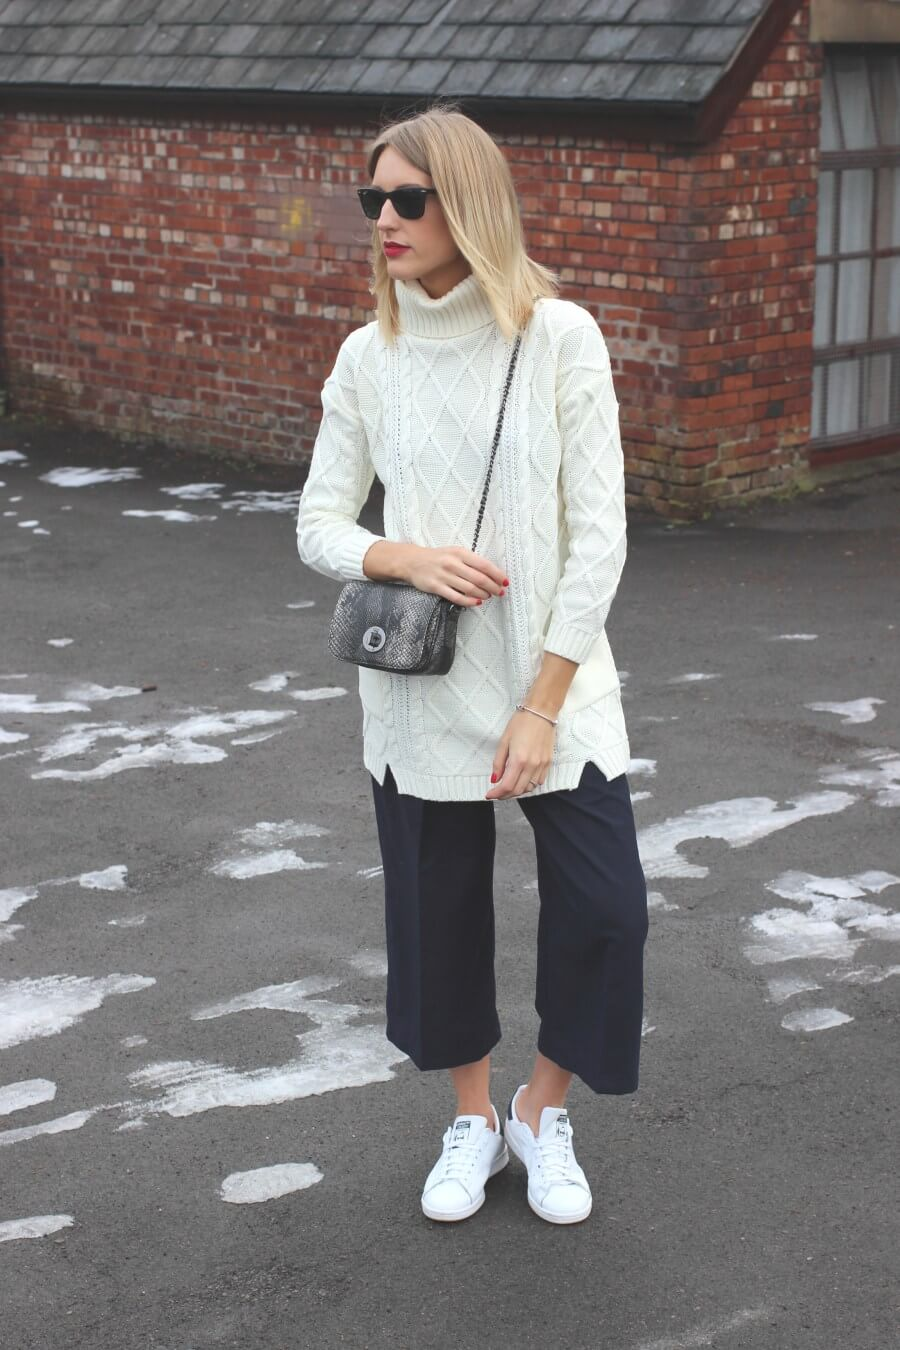 styling cullottes on uk fashion blog